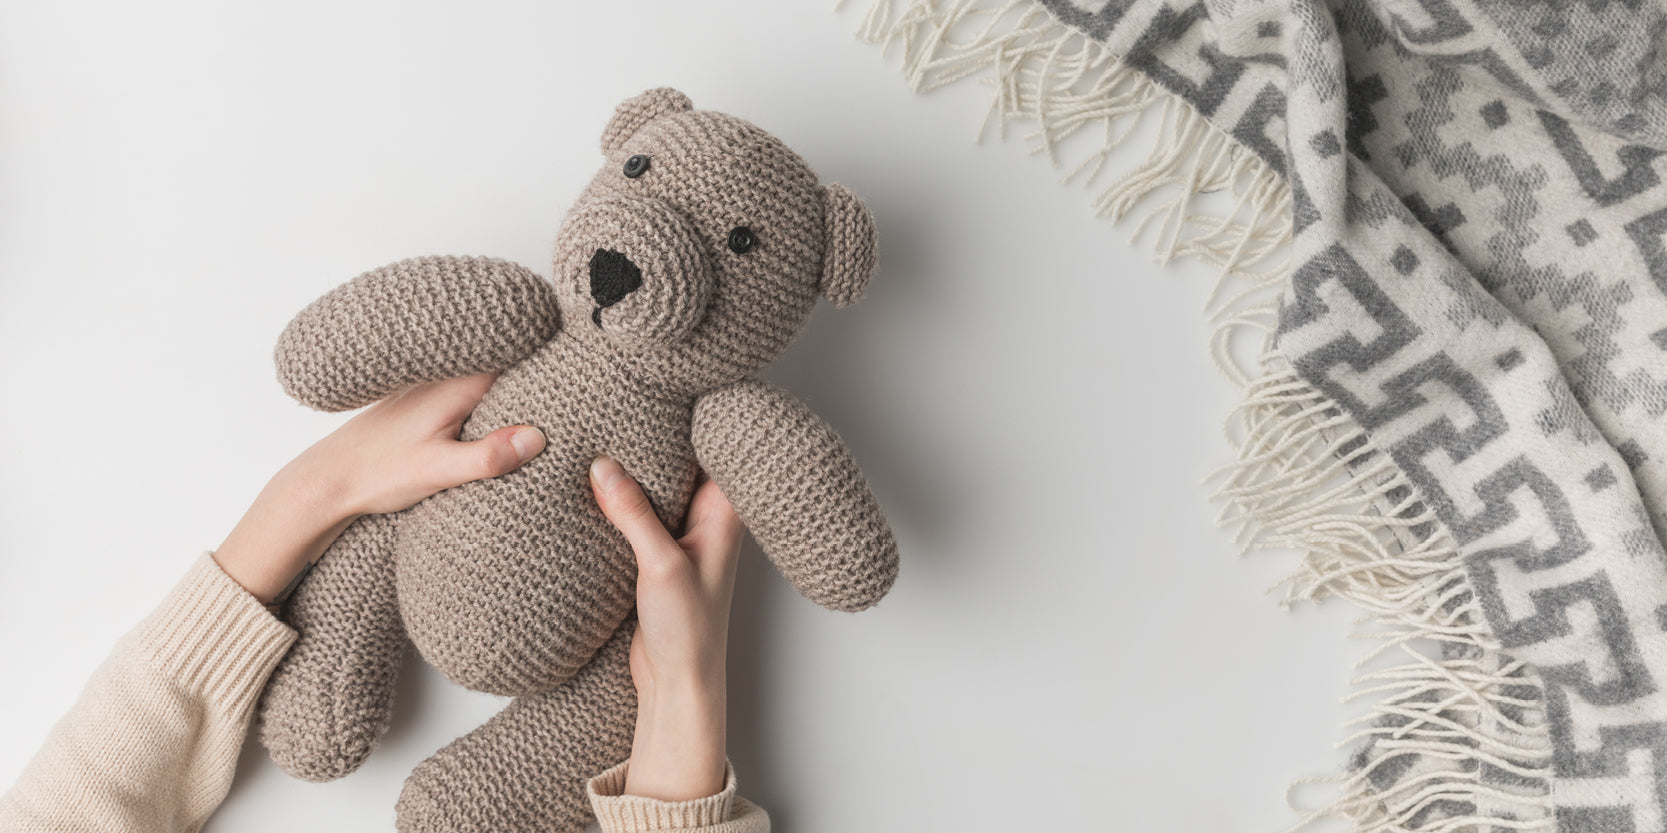 REUSE: Repurpose Old Sweaters and Jumpers - Knitted Toys